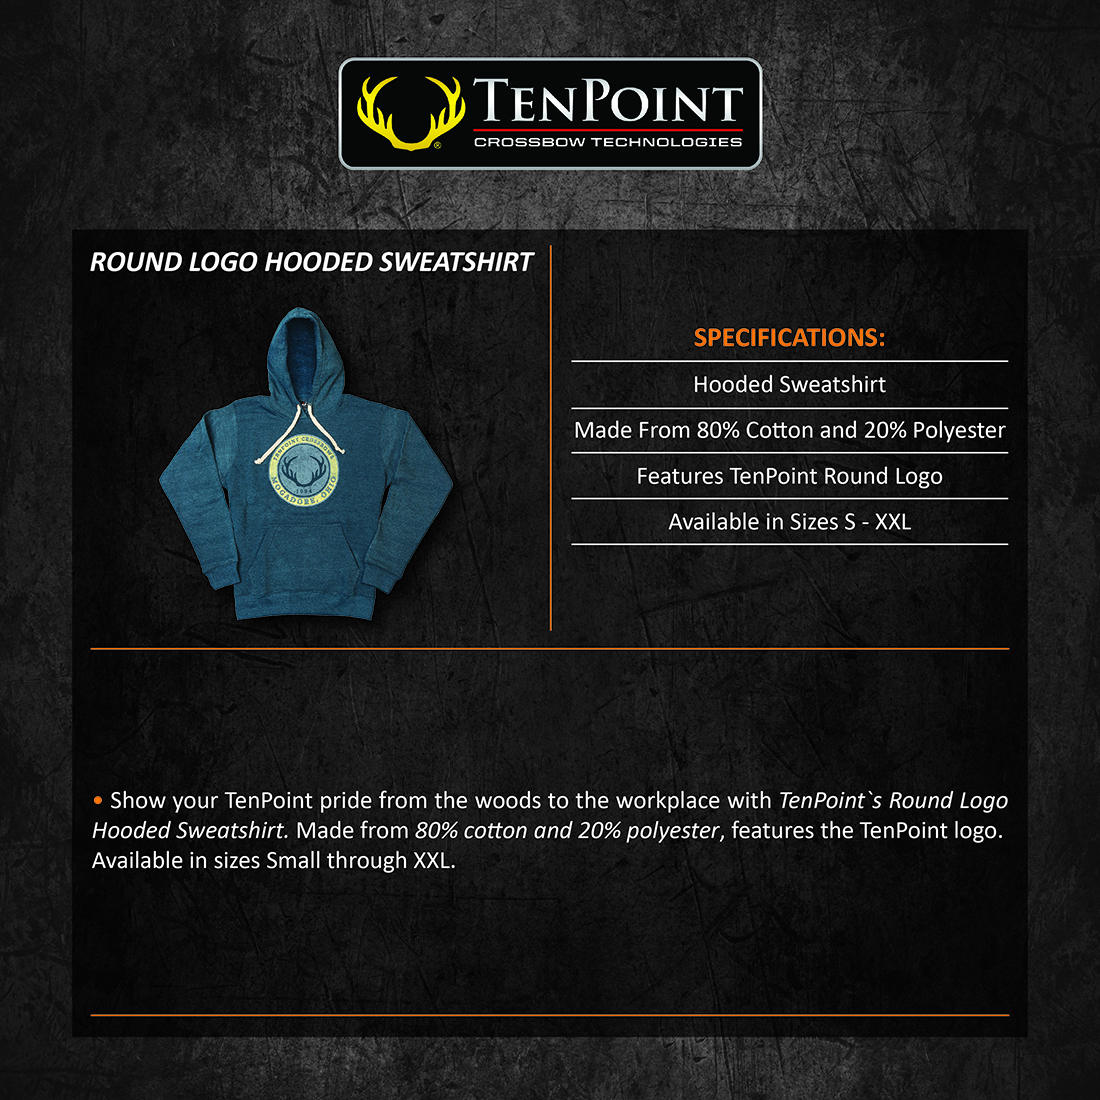 TenPoint_Round_Logo_Hooded_Sweatshirt_Product_Description